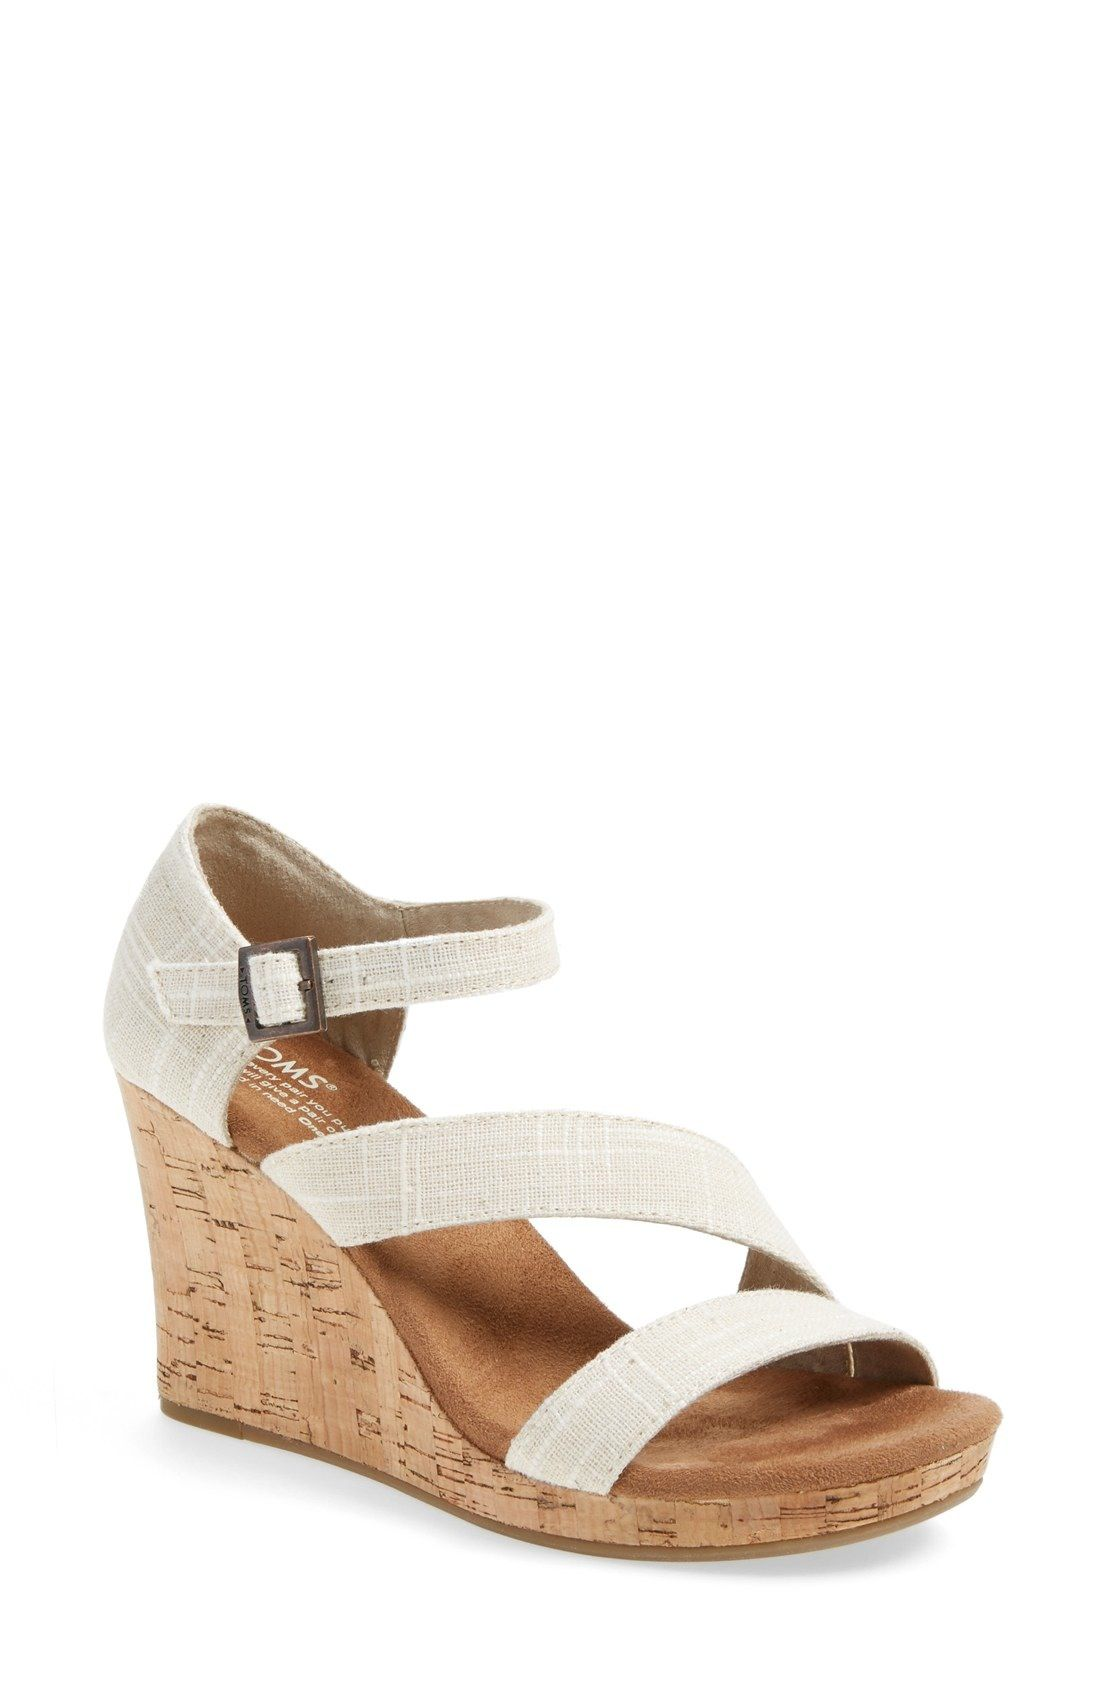 Clarissa Wedge Sandal Neutral Straps Woven From A Cotton And Linen Blend Angle Across A Lightweight Sanda Strappy Sandals Wedge Wedge Sandals Womens Sandals